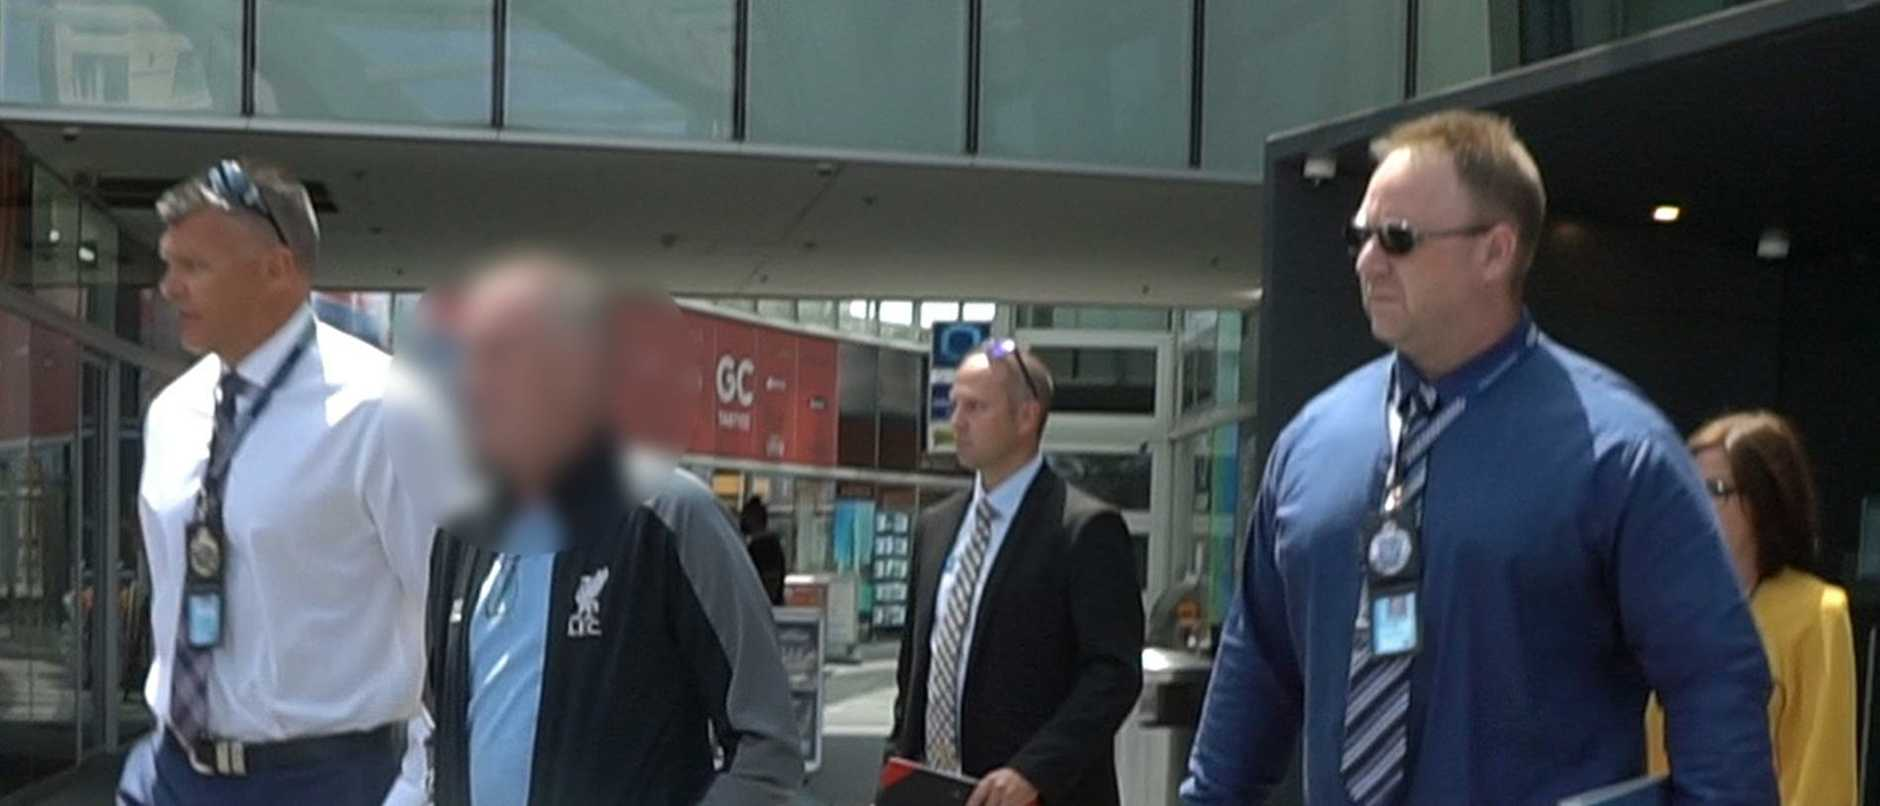 Warren John McCorriston is accused of sexually assaulting three girls. he has been extradited to New South Wales to face charges.